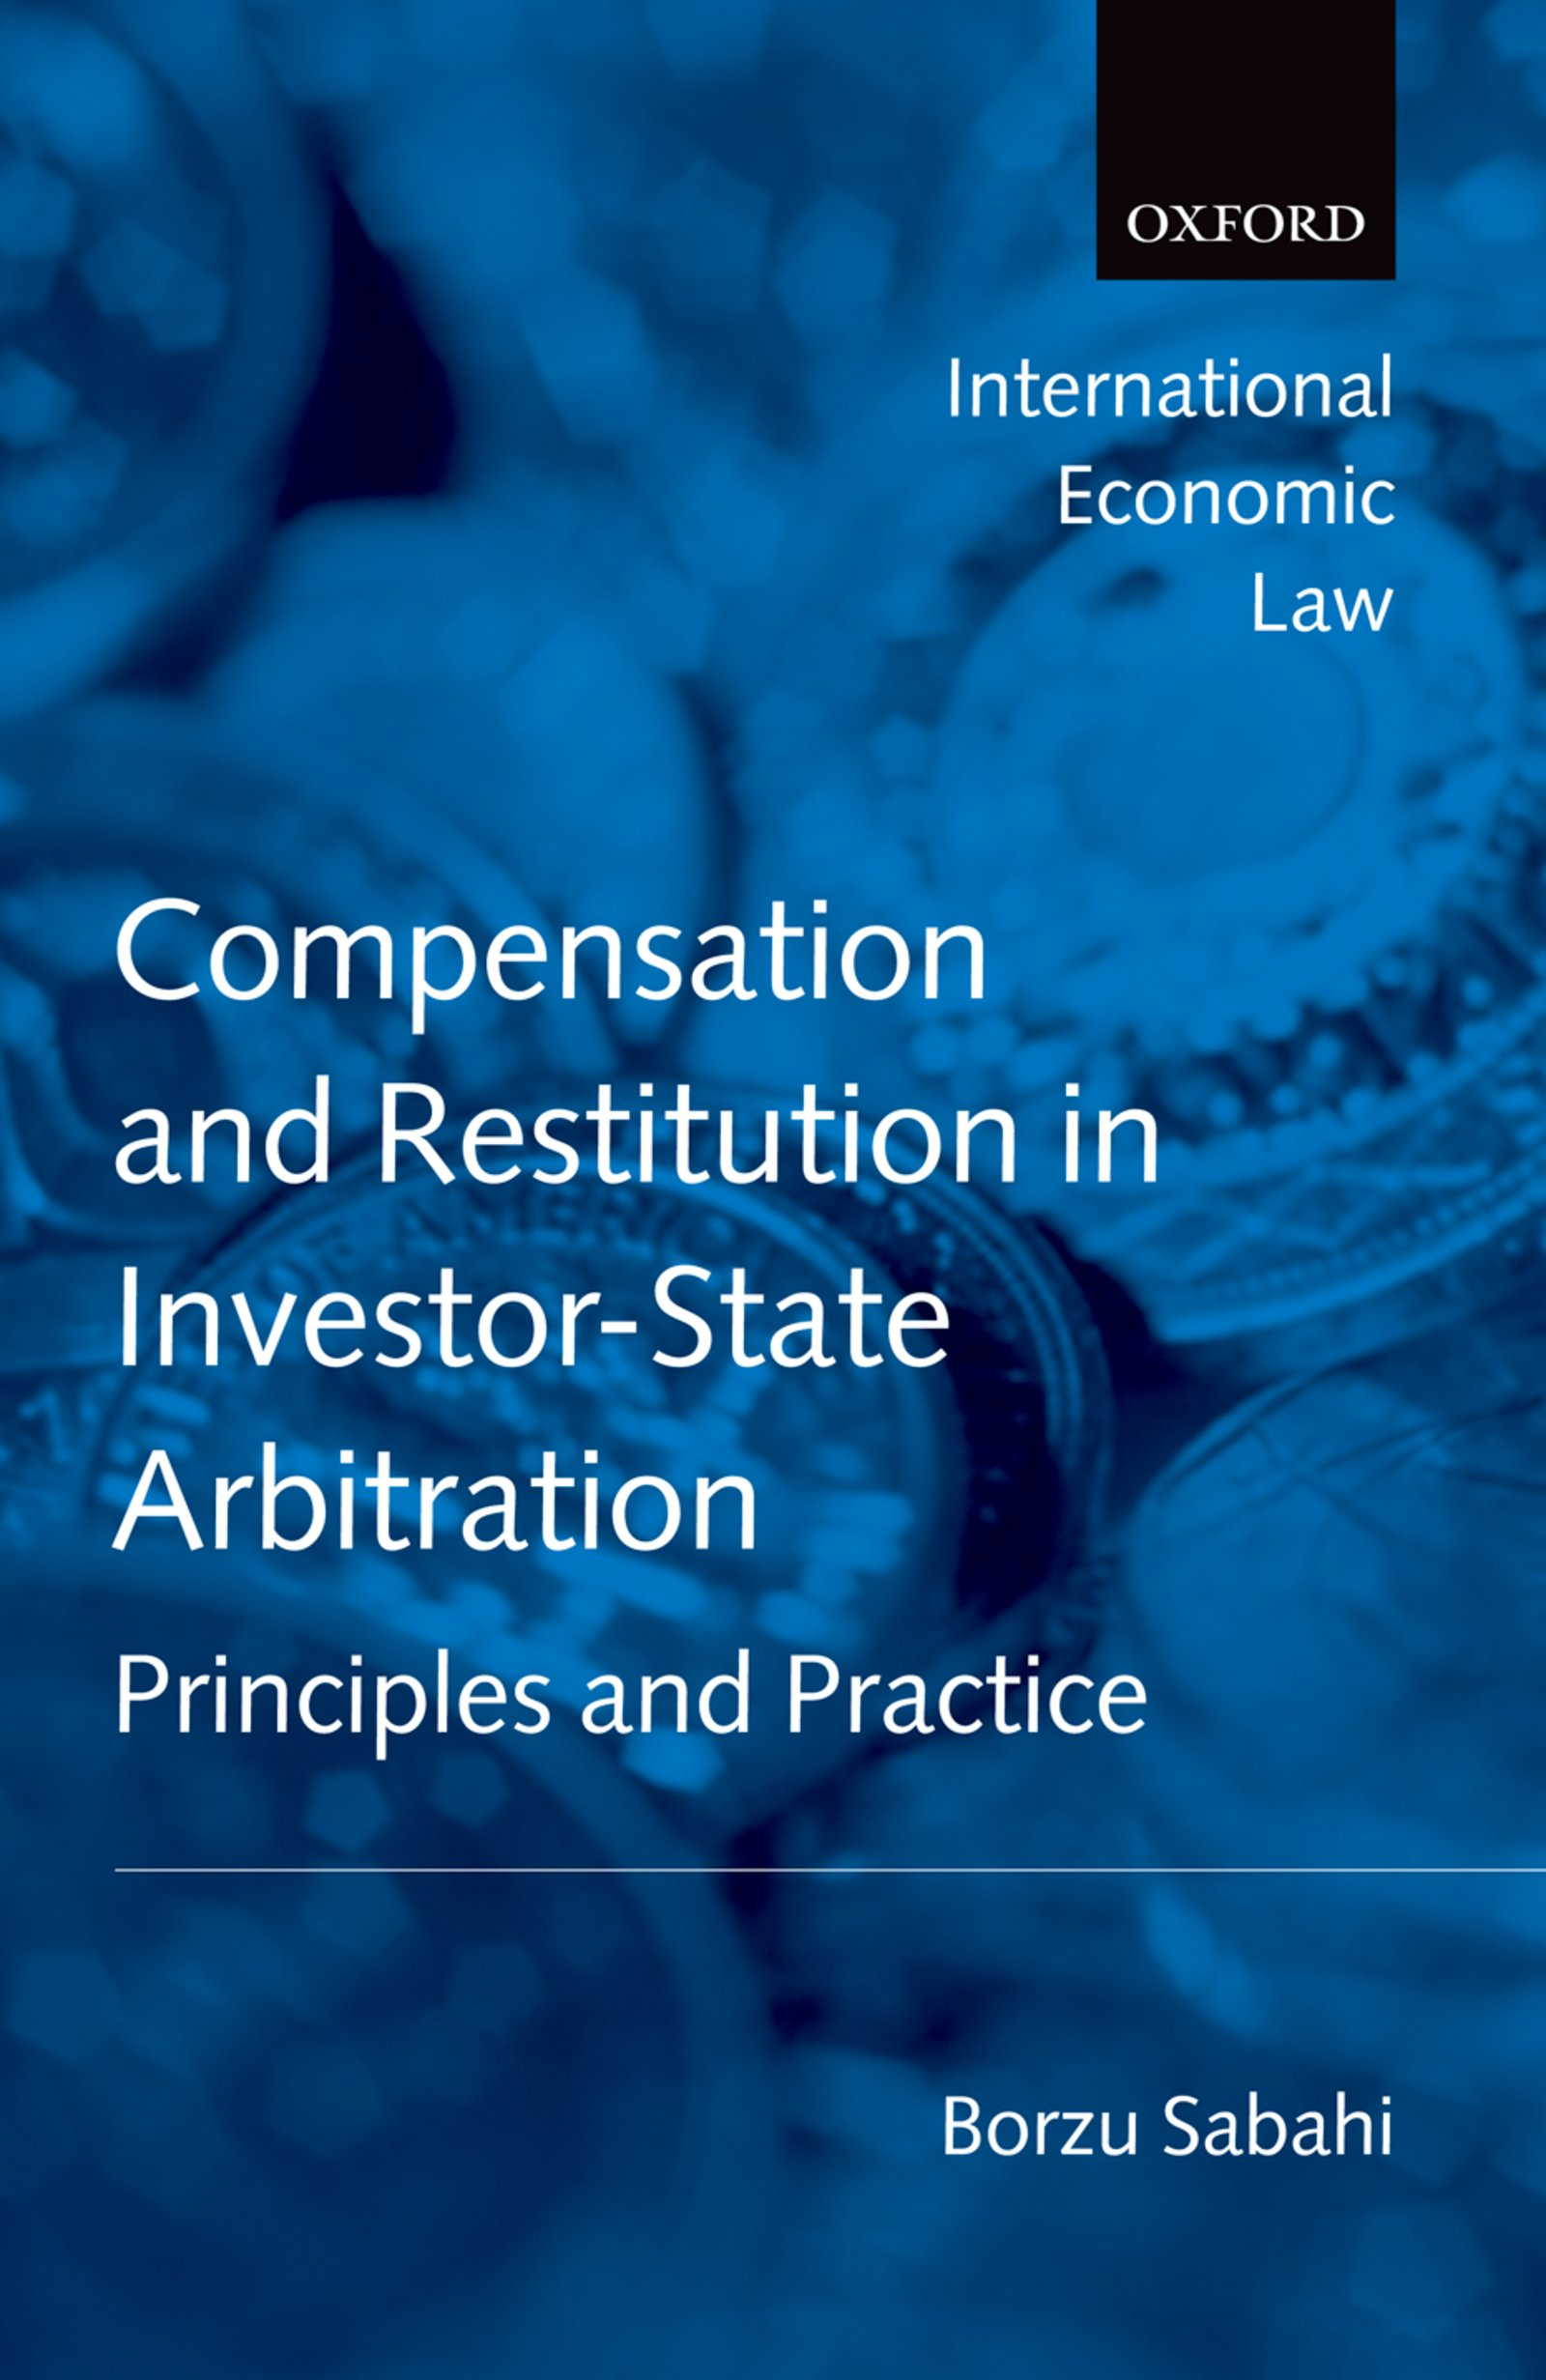 Download Ebook Compensation and Restitution in Investor-State Arbitration by Borzu Sabahi Pdf